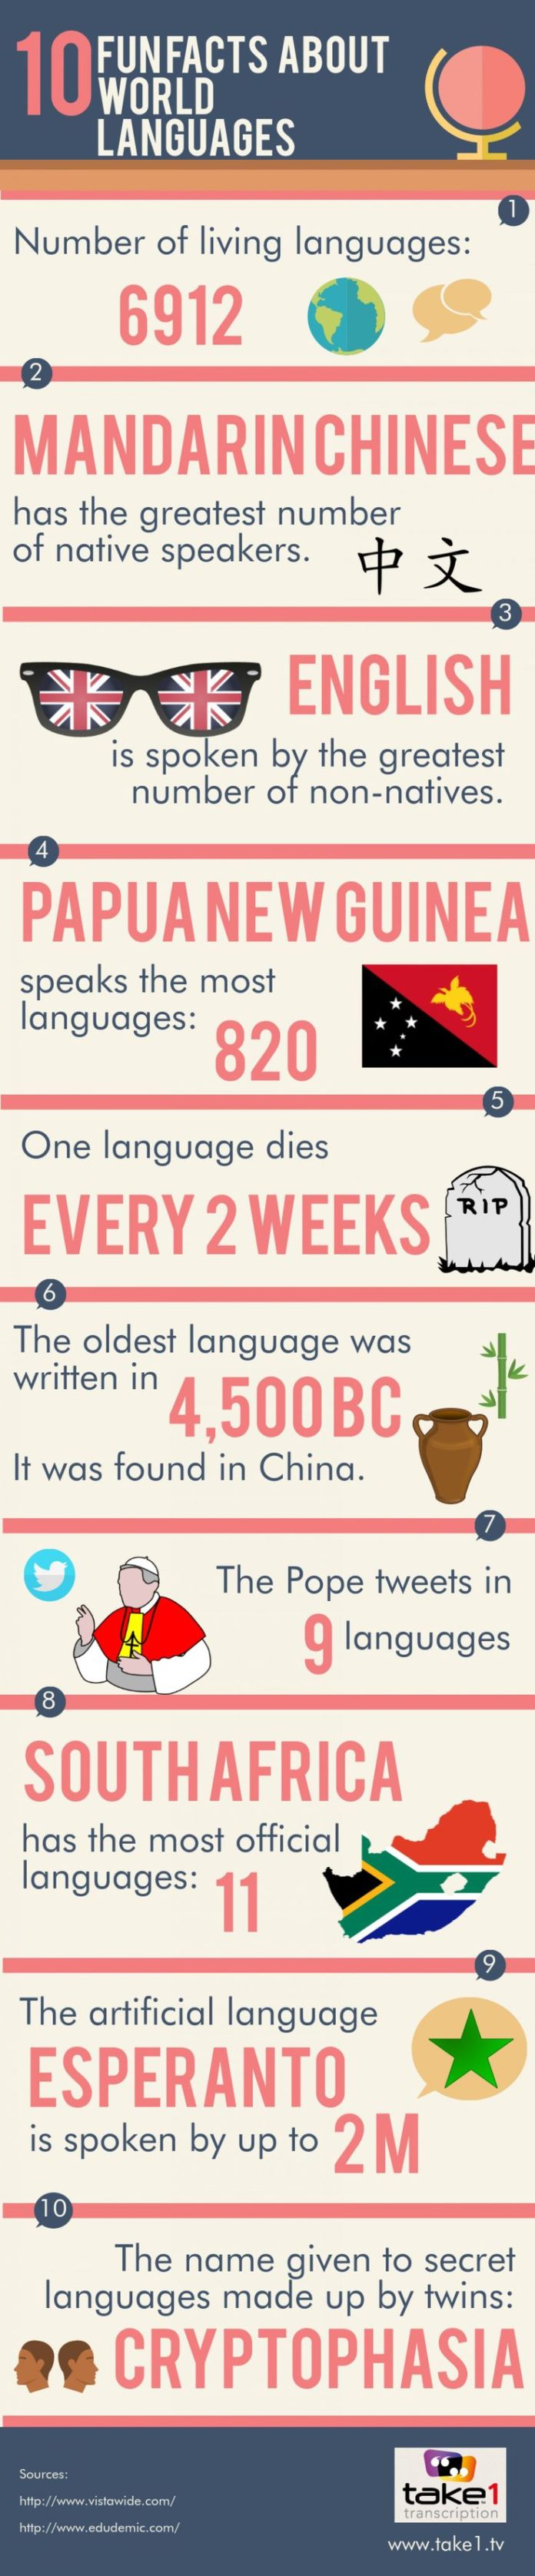 Educational Infographic Fun Facts About World Languages - World of languages infographic